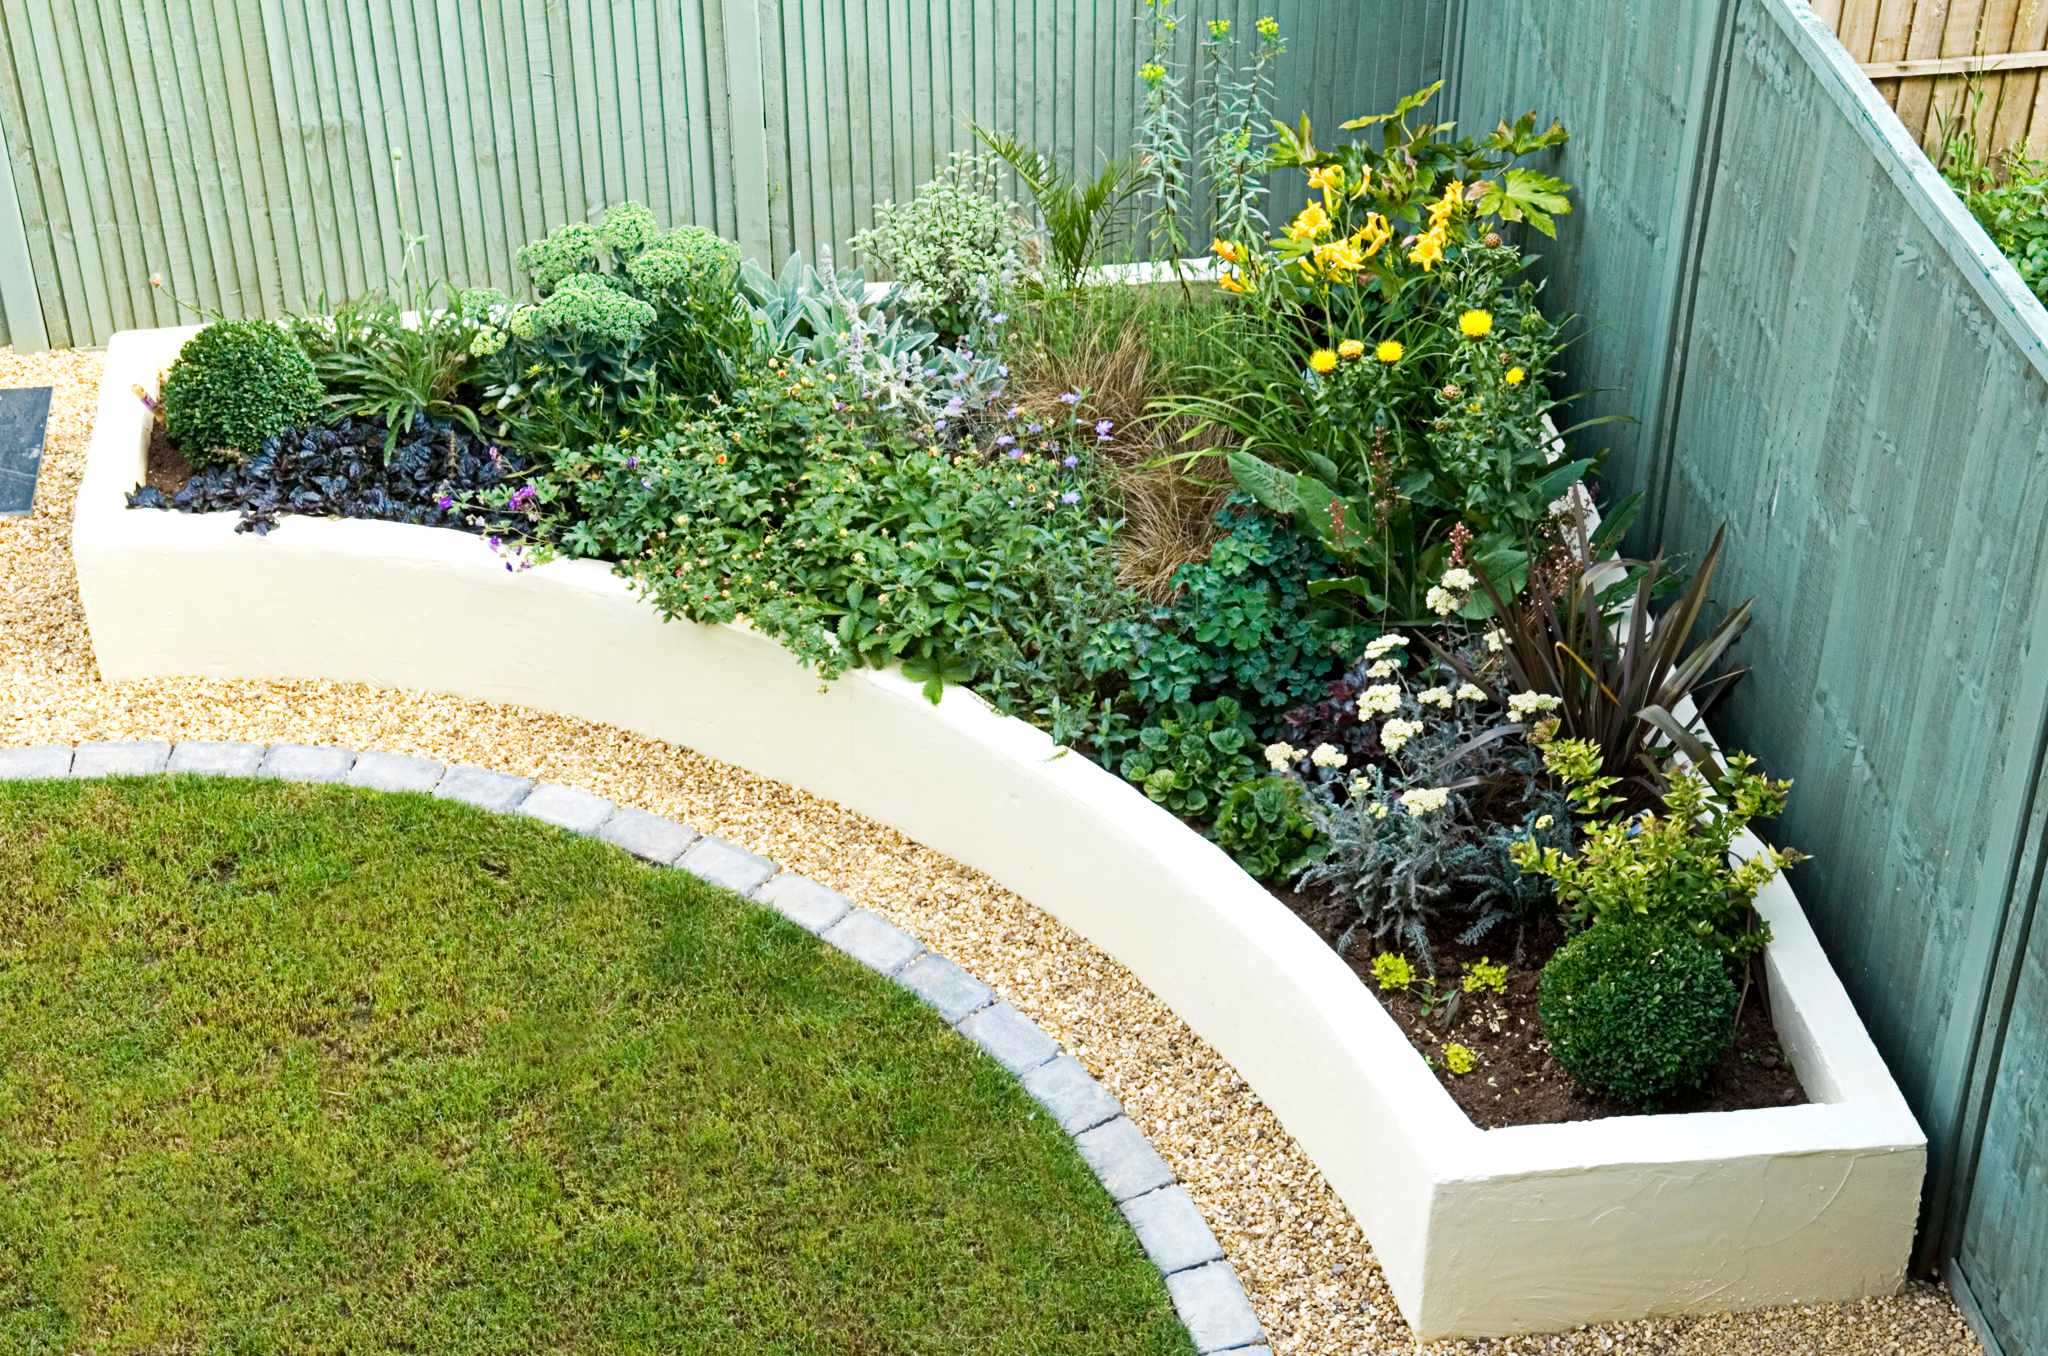 Build a Raised Bed (In Pictures)